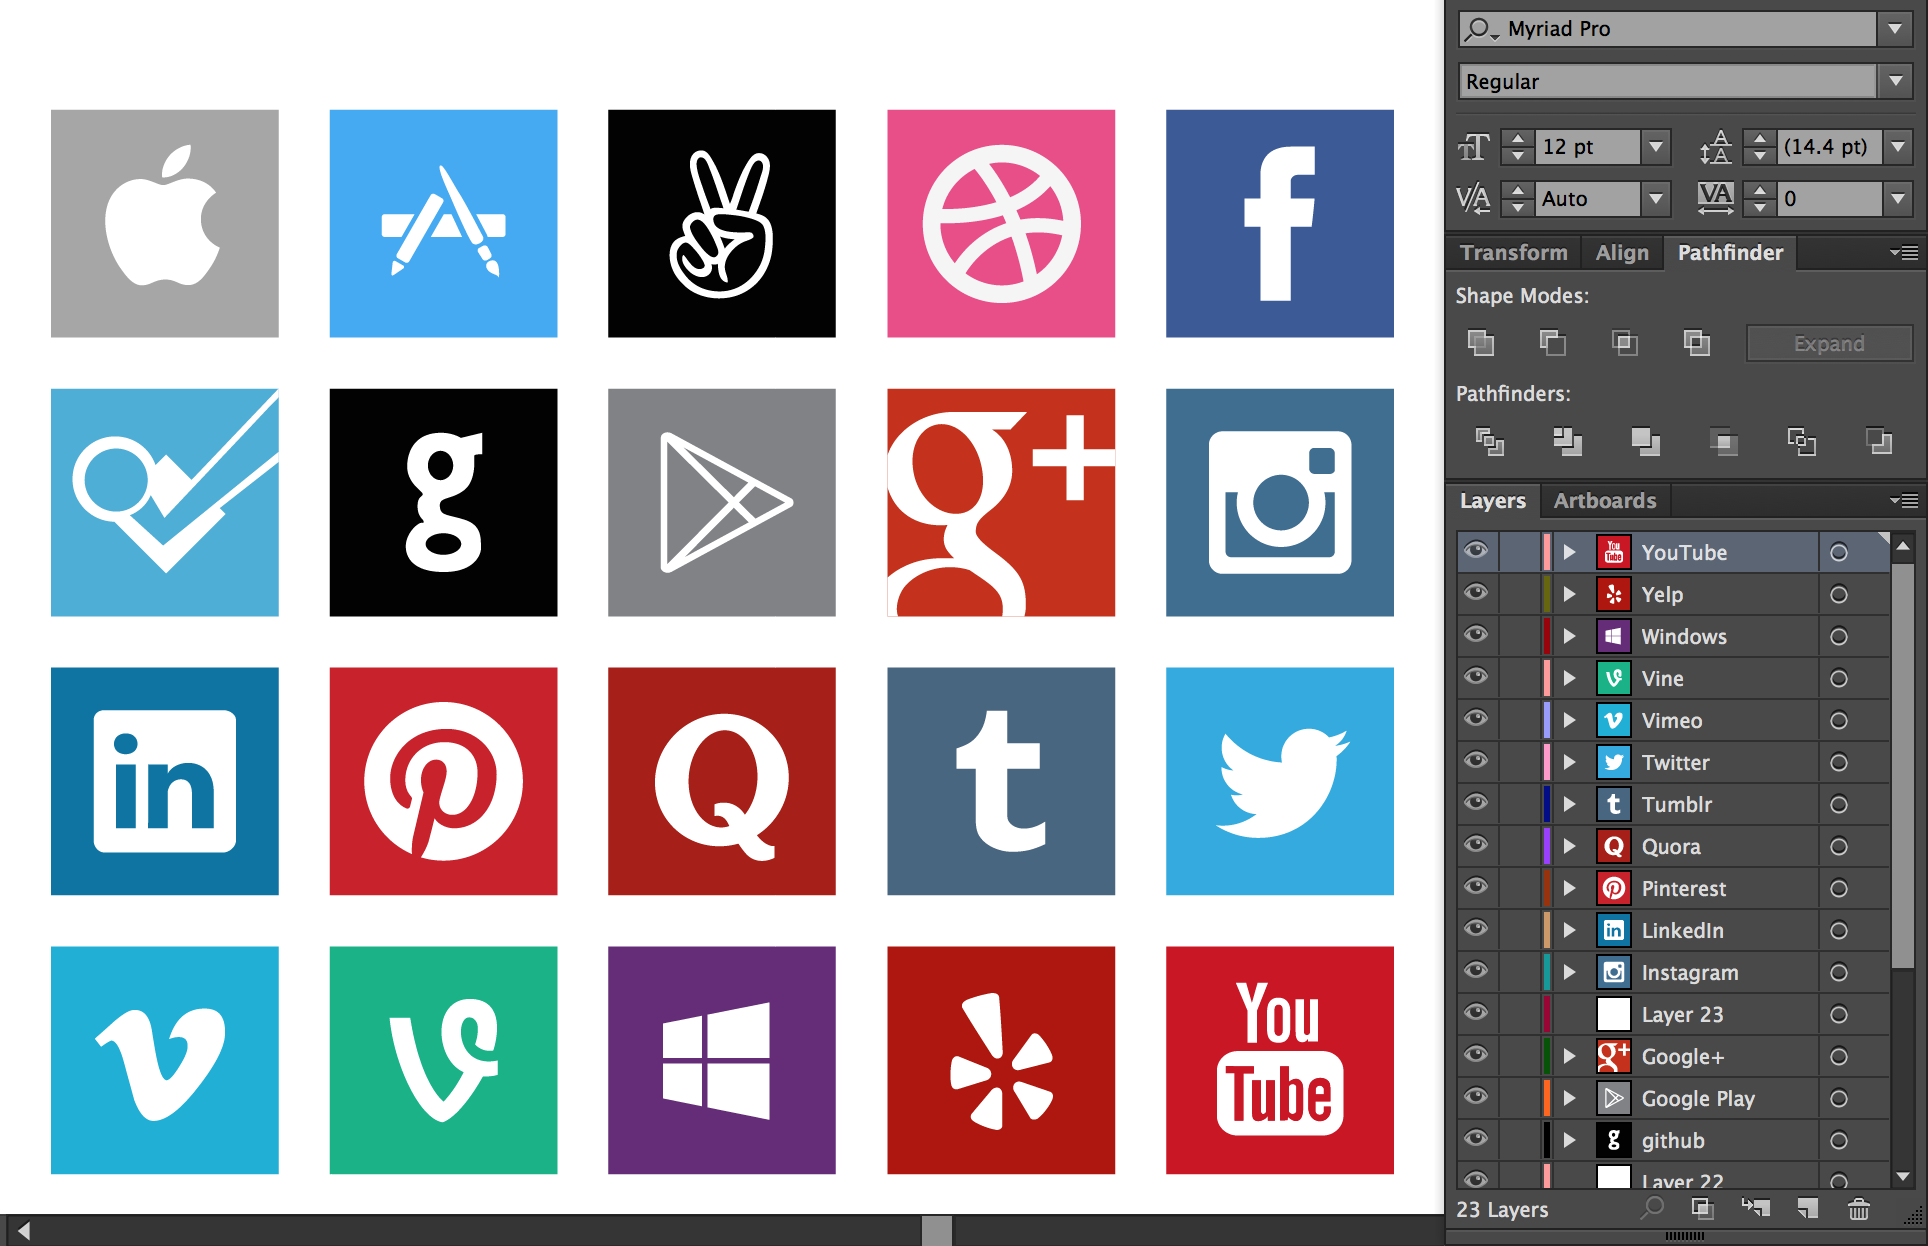 Square Social Media Icons Vector Set Download Garrett Gee - amazoncom roblox neck scarf square silk party